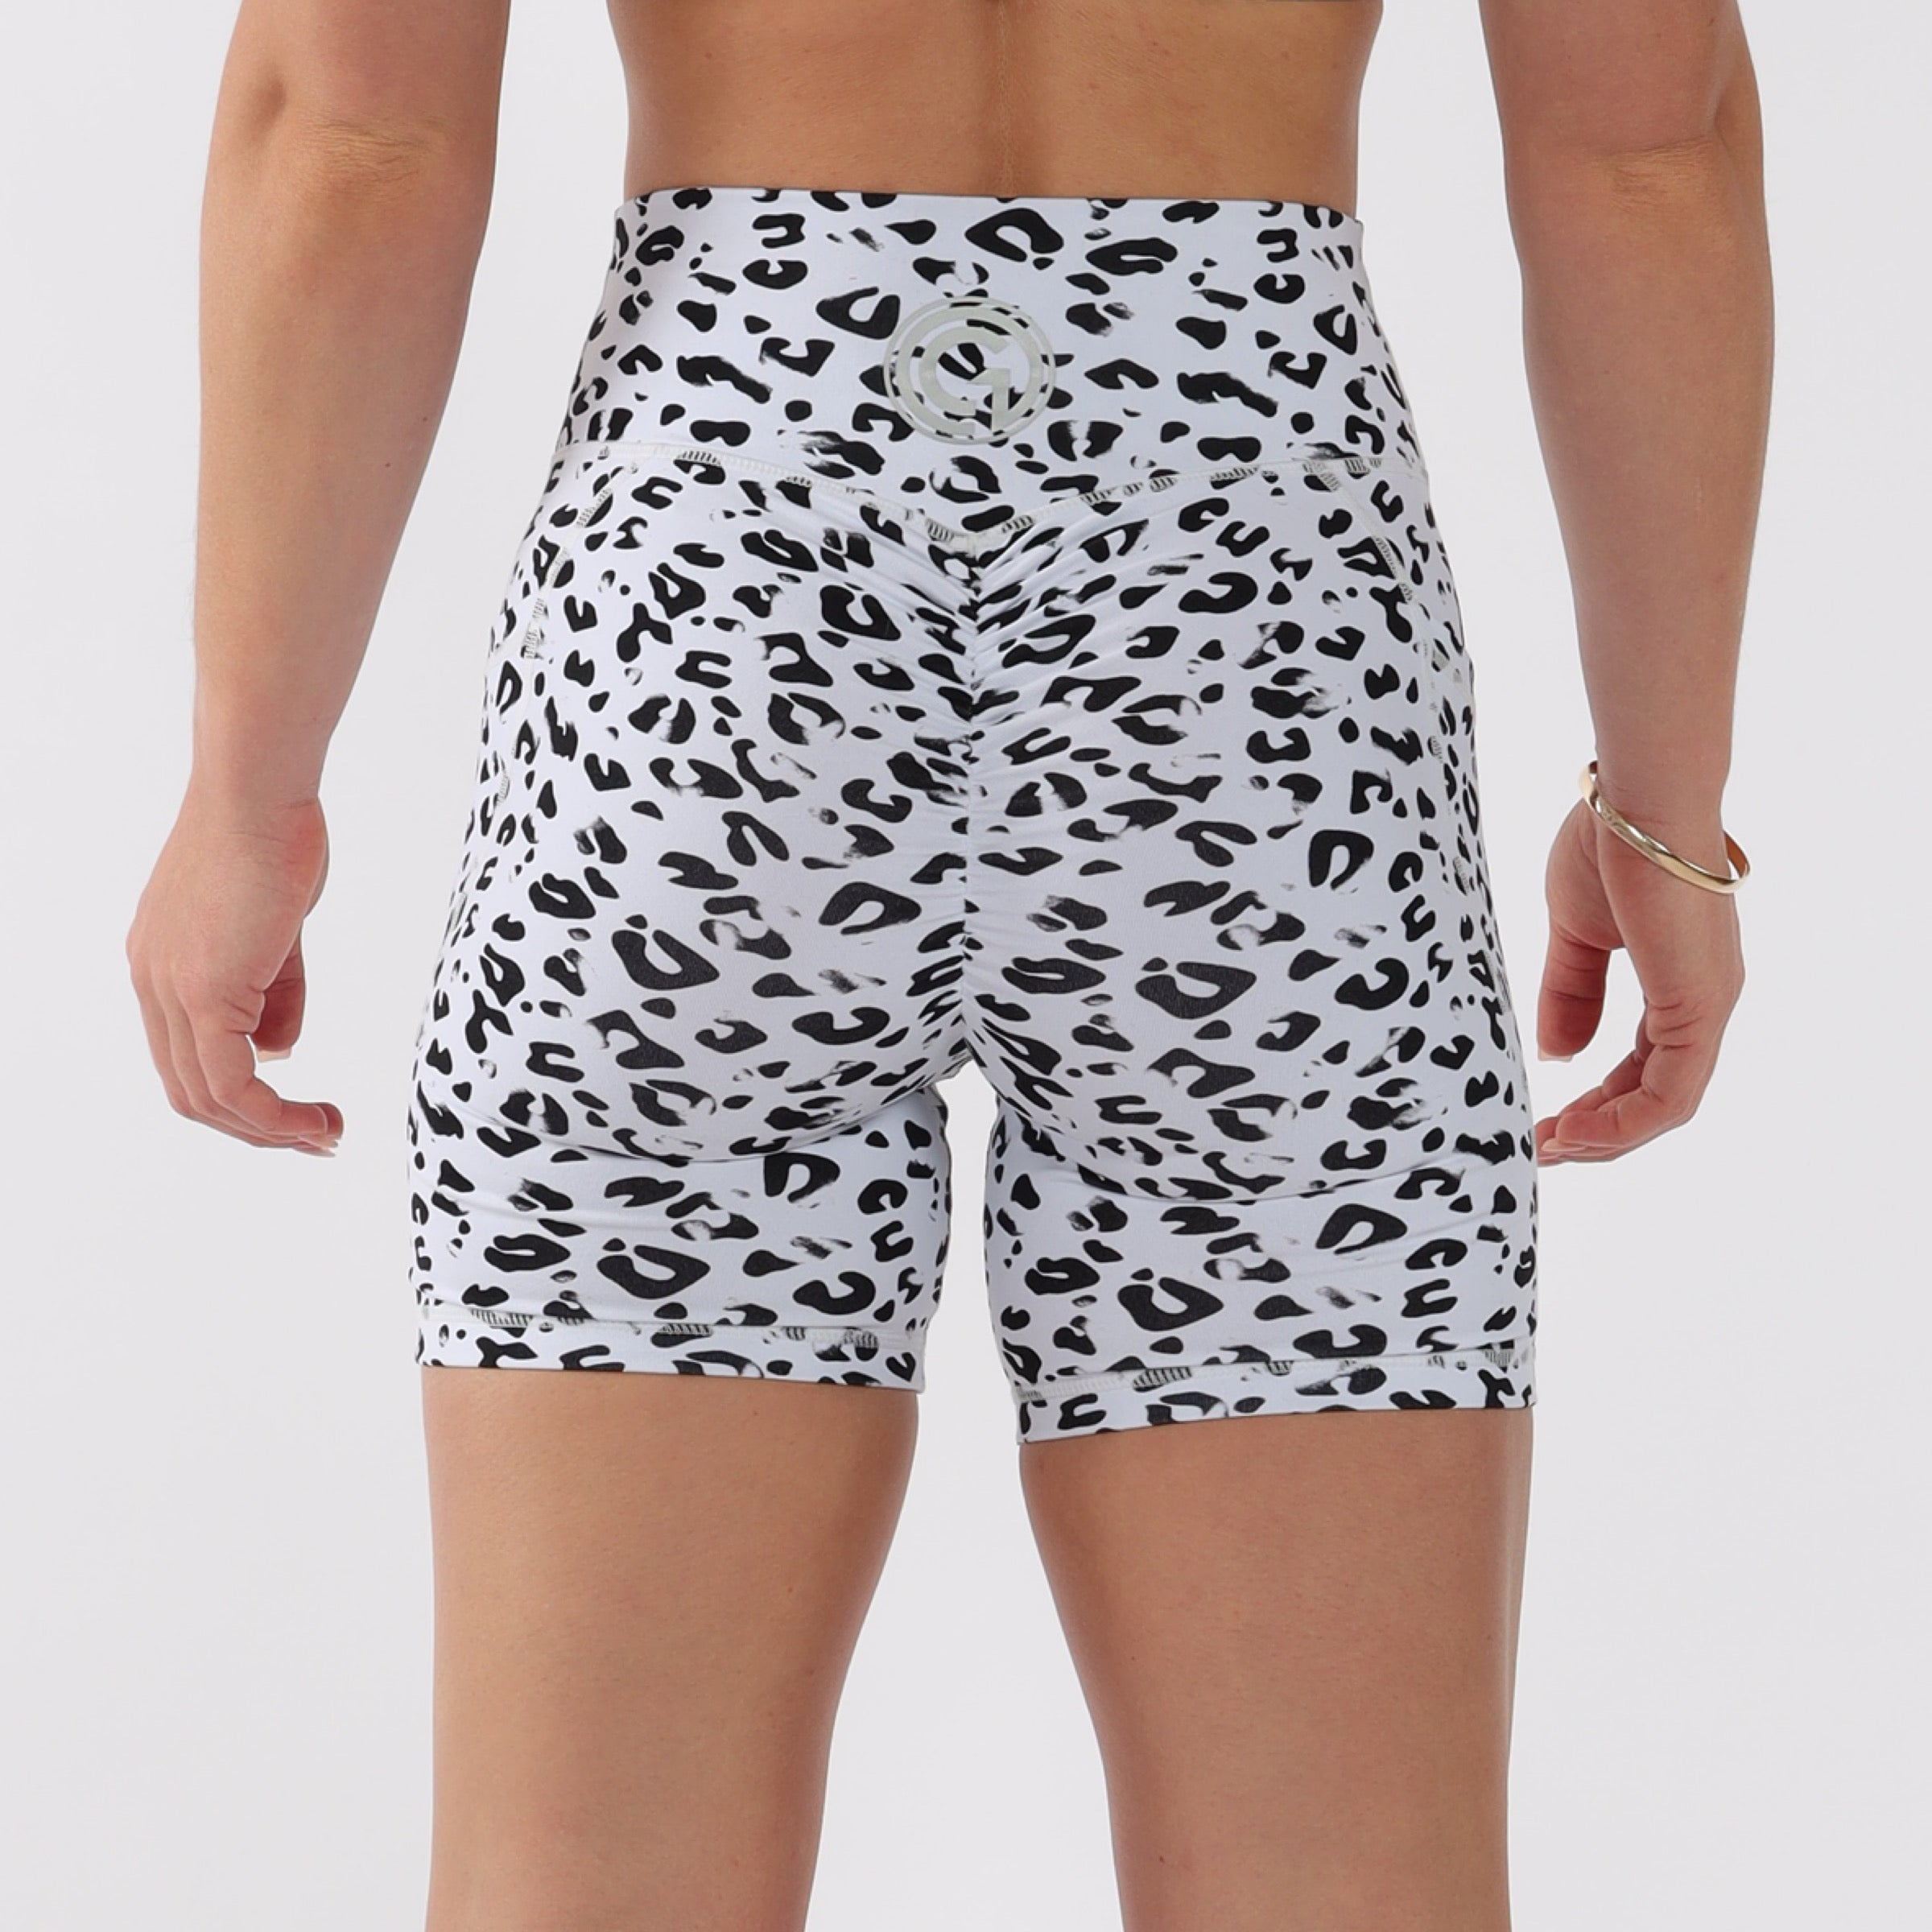 SCRUNCH BIKE SHORTS (POCKETS) - WHITE LEOPARD